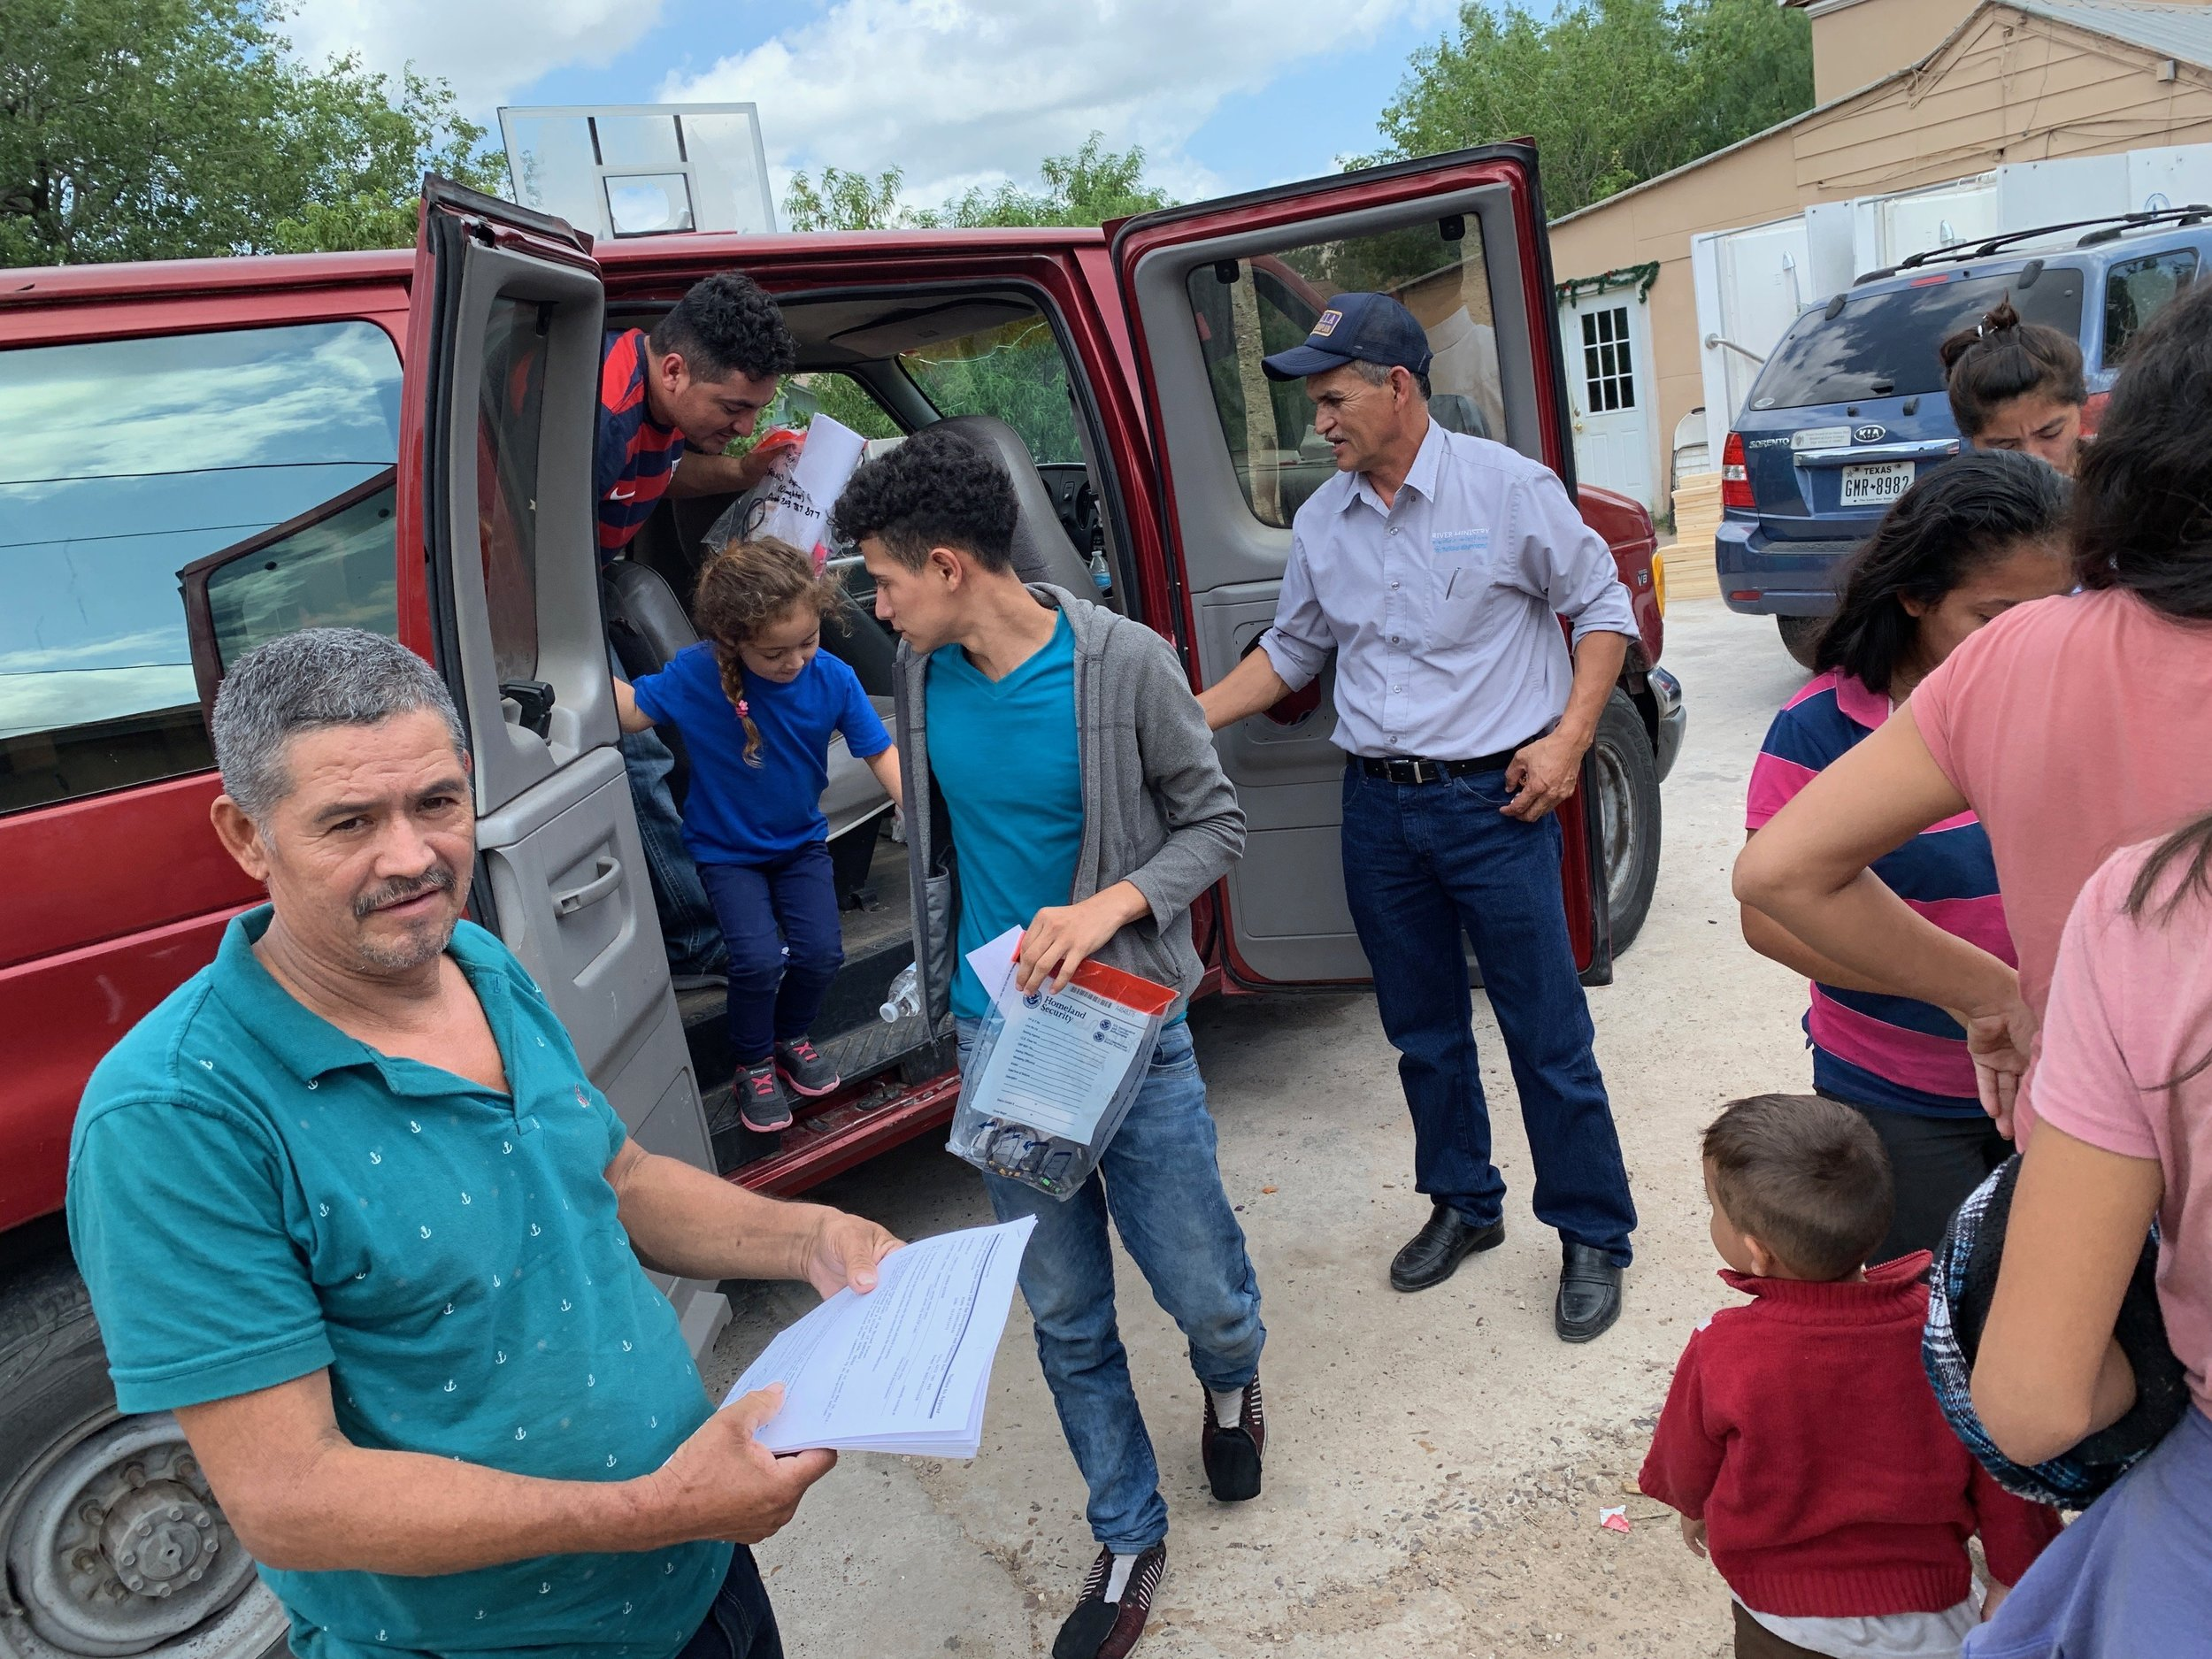 Pastor Ortiz brings refugees to his home.